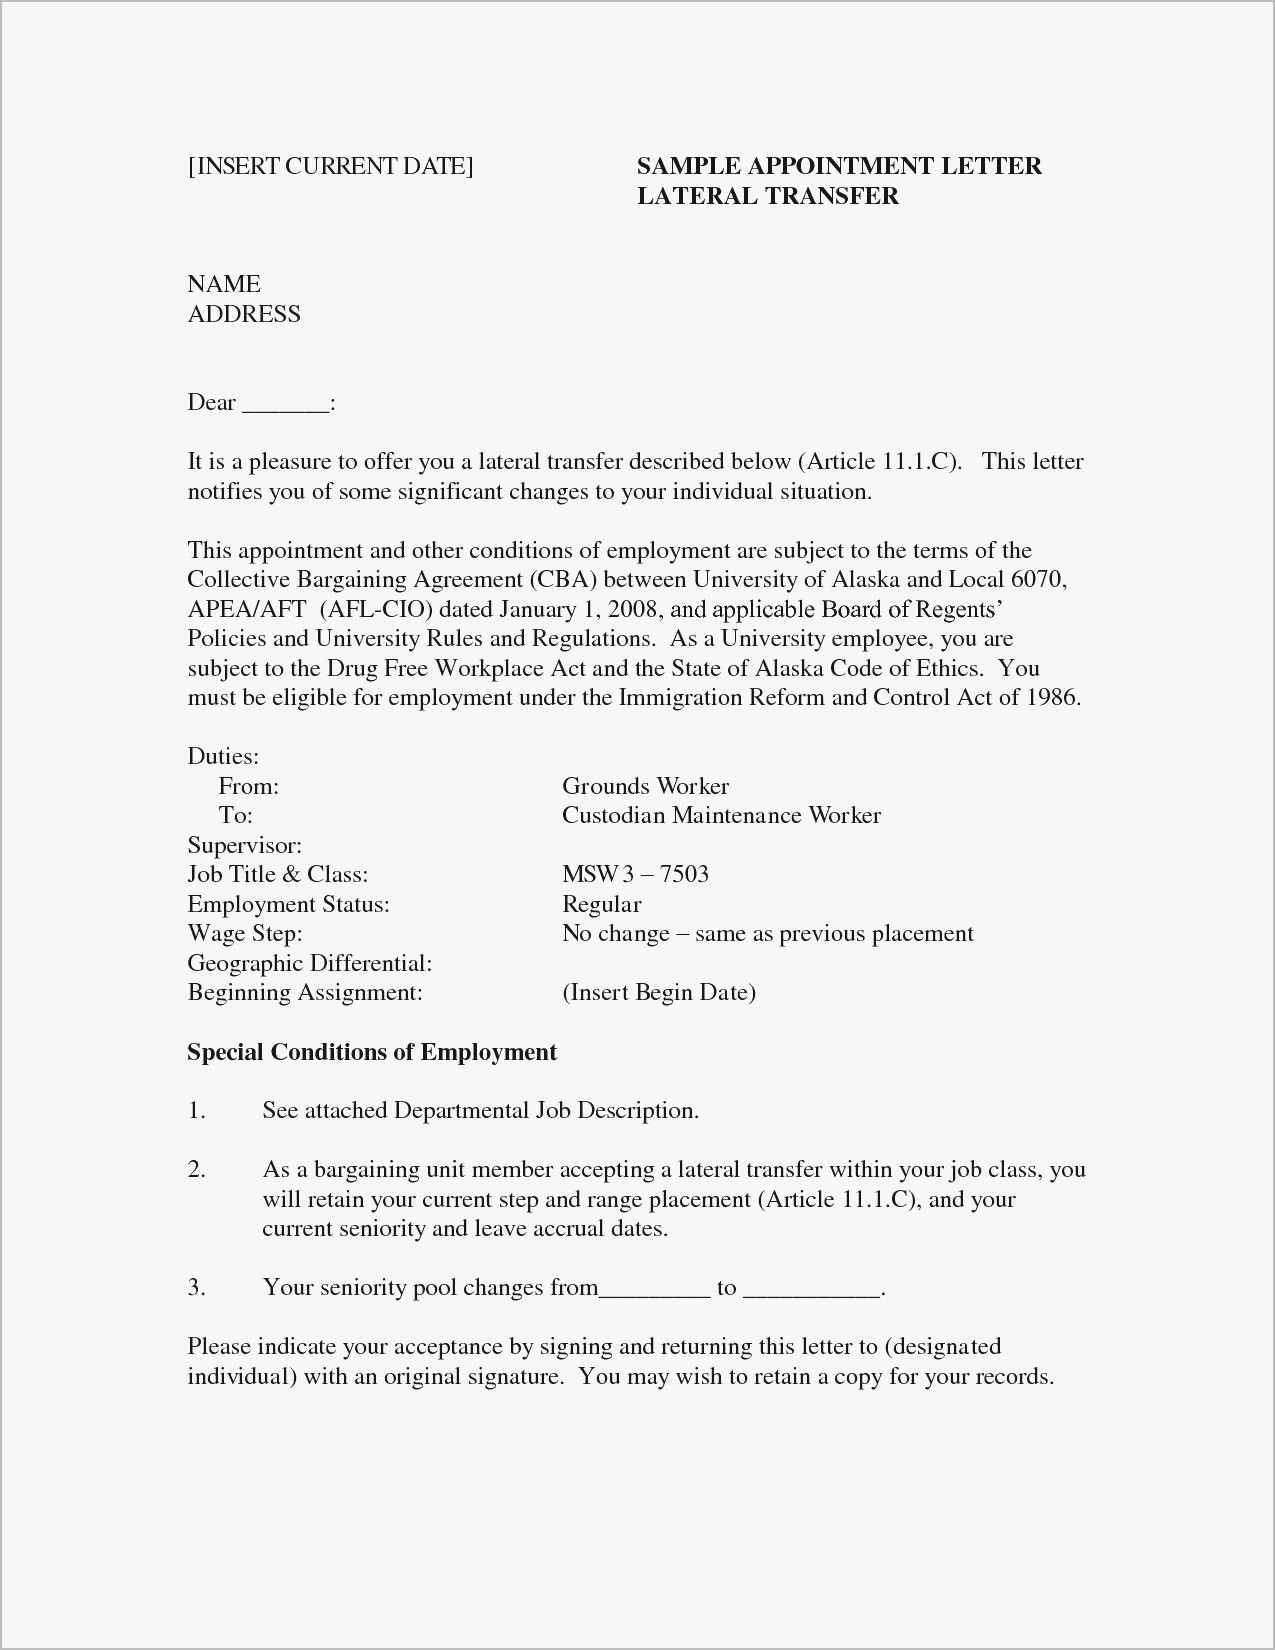 Resume Rabbit - Resume Rabbit Worth It Prodigous Good Summary for Resume Fresh Fresh